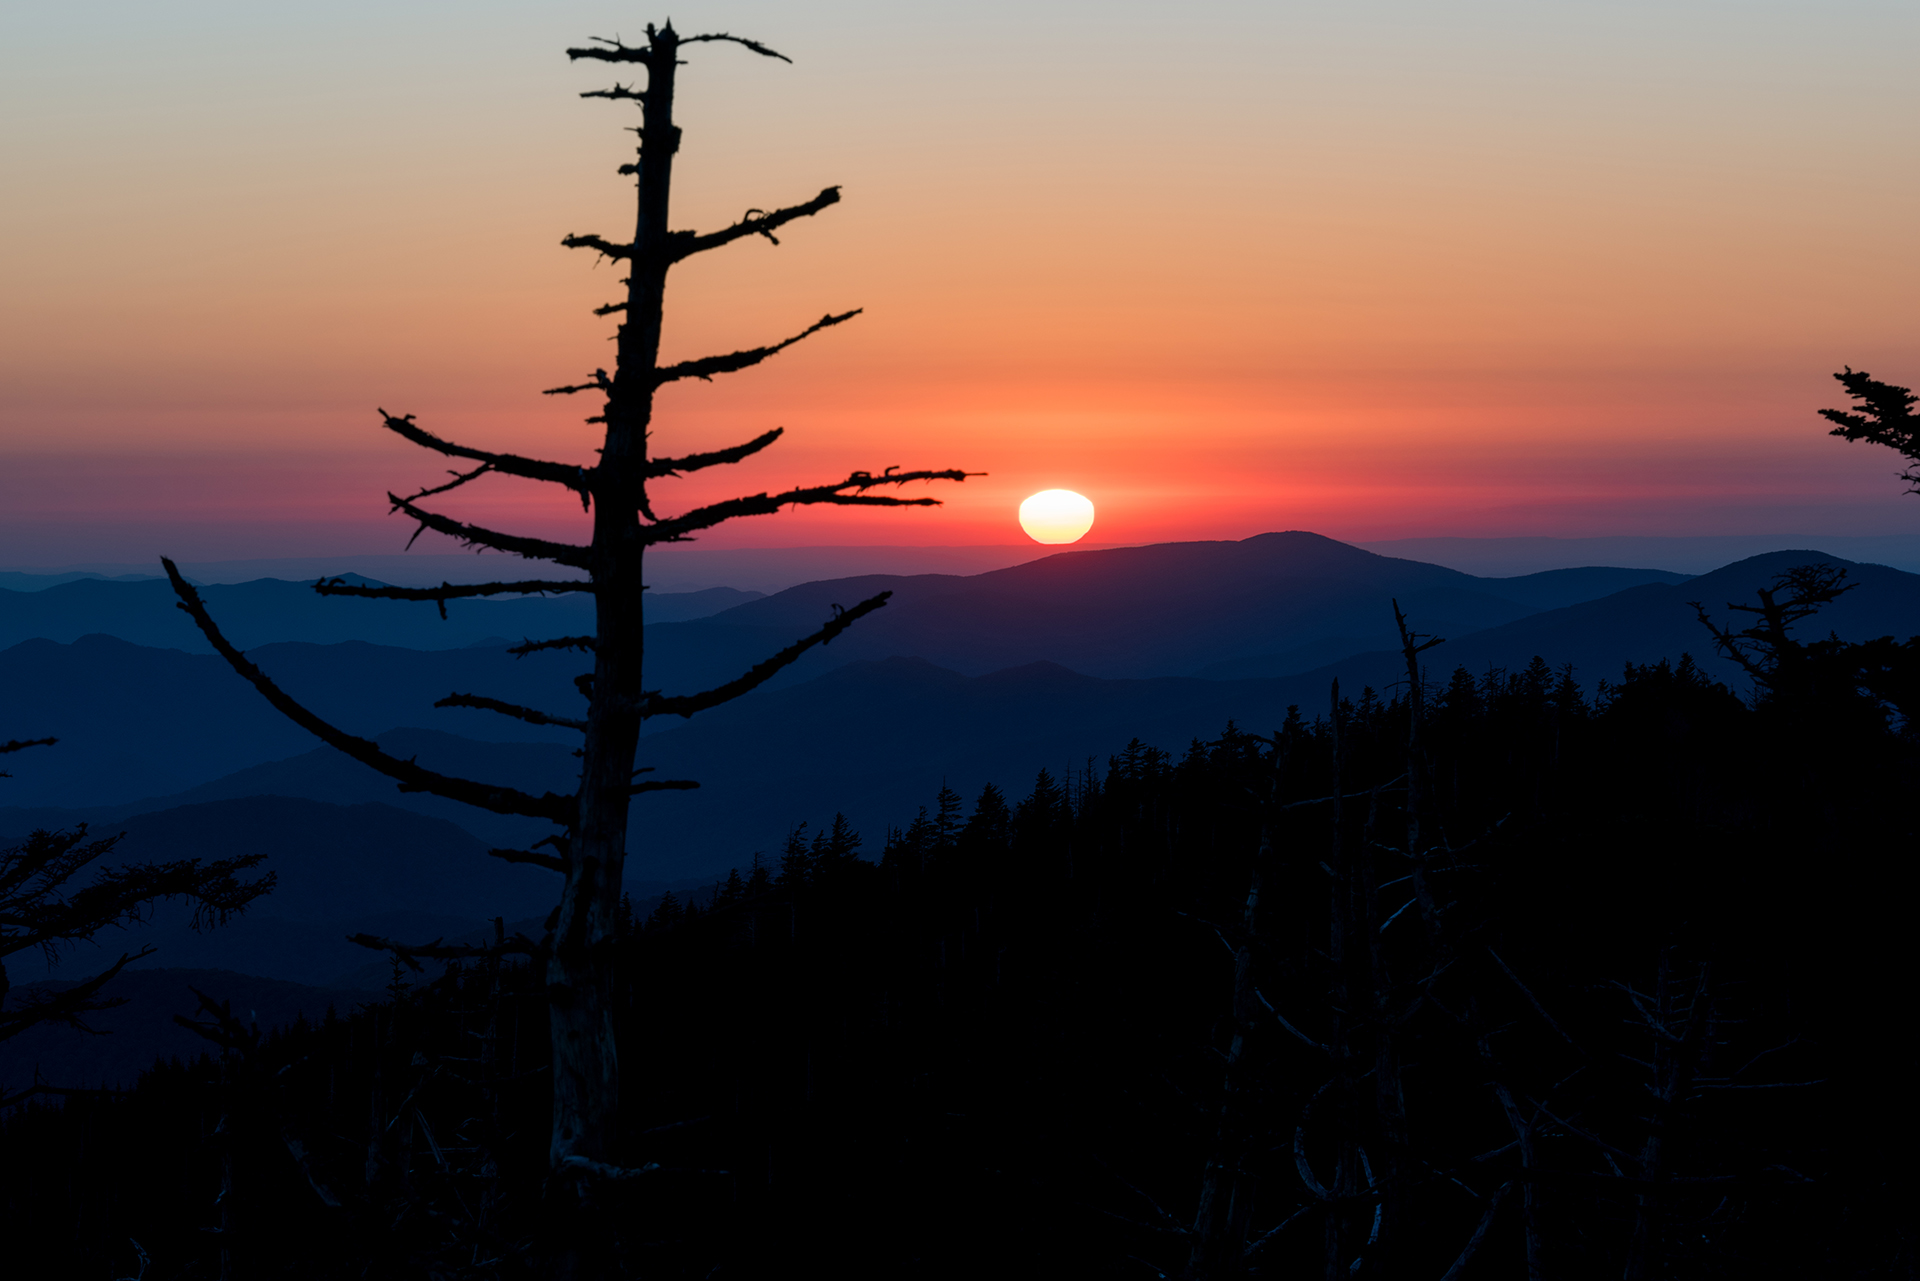 Sunset Tree at Clingman's Dome